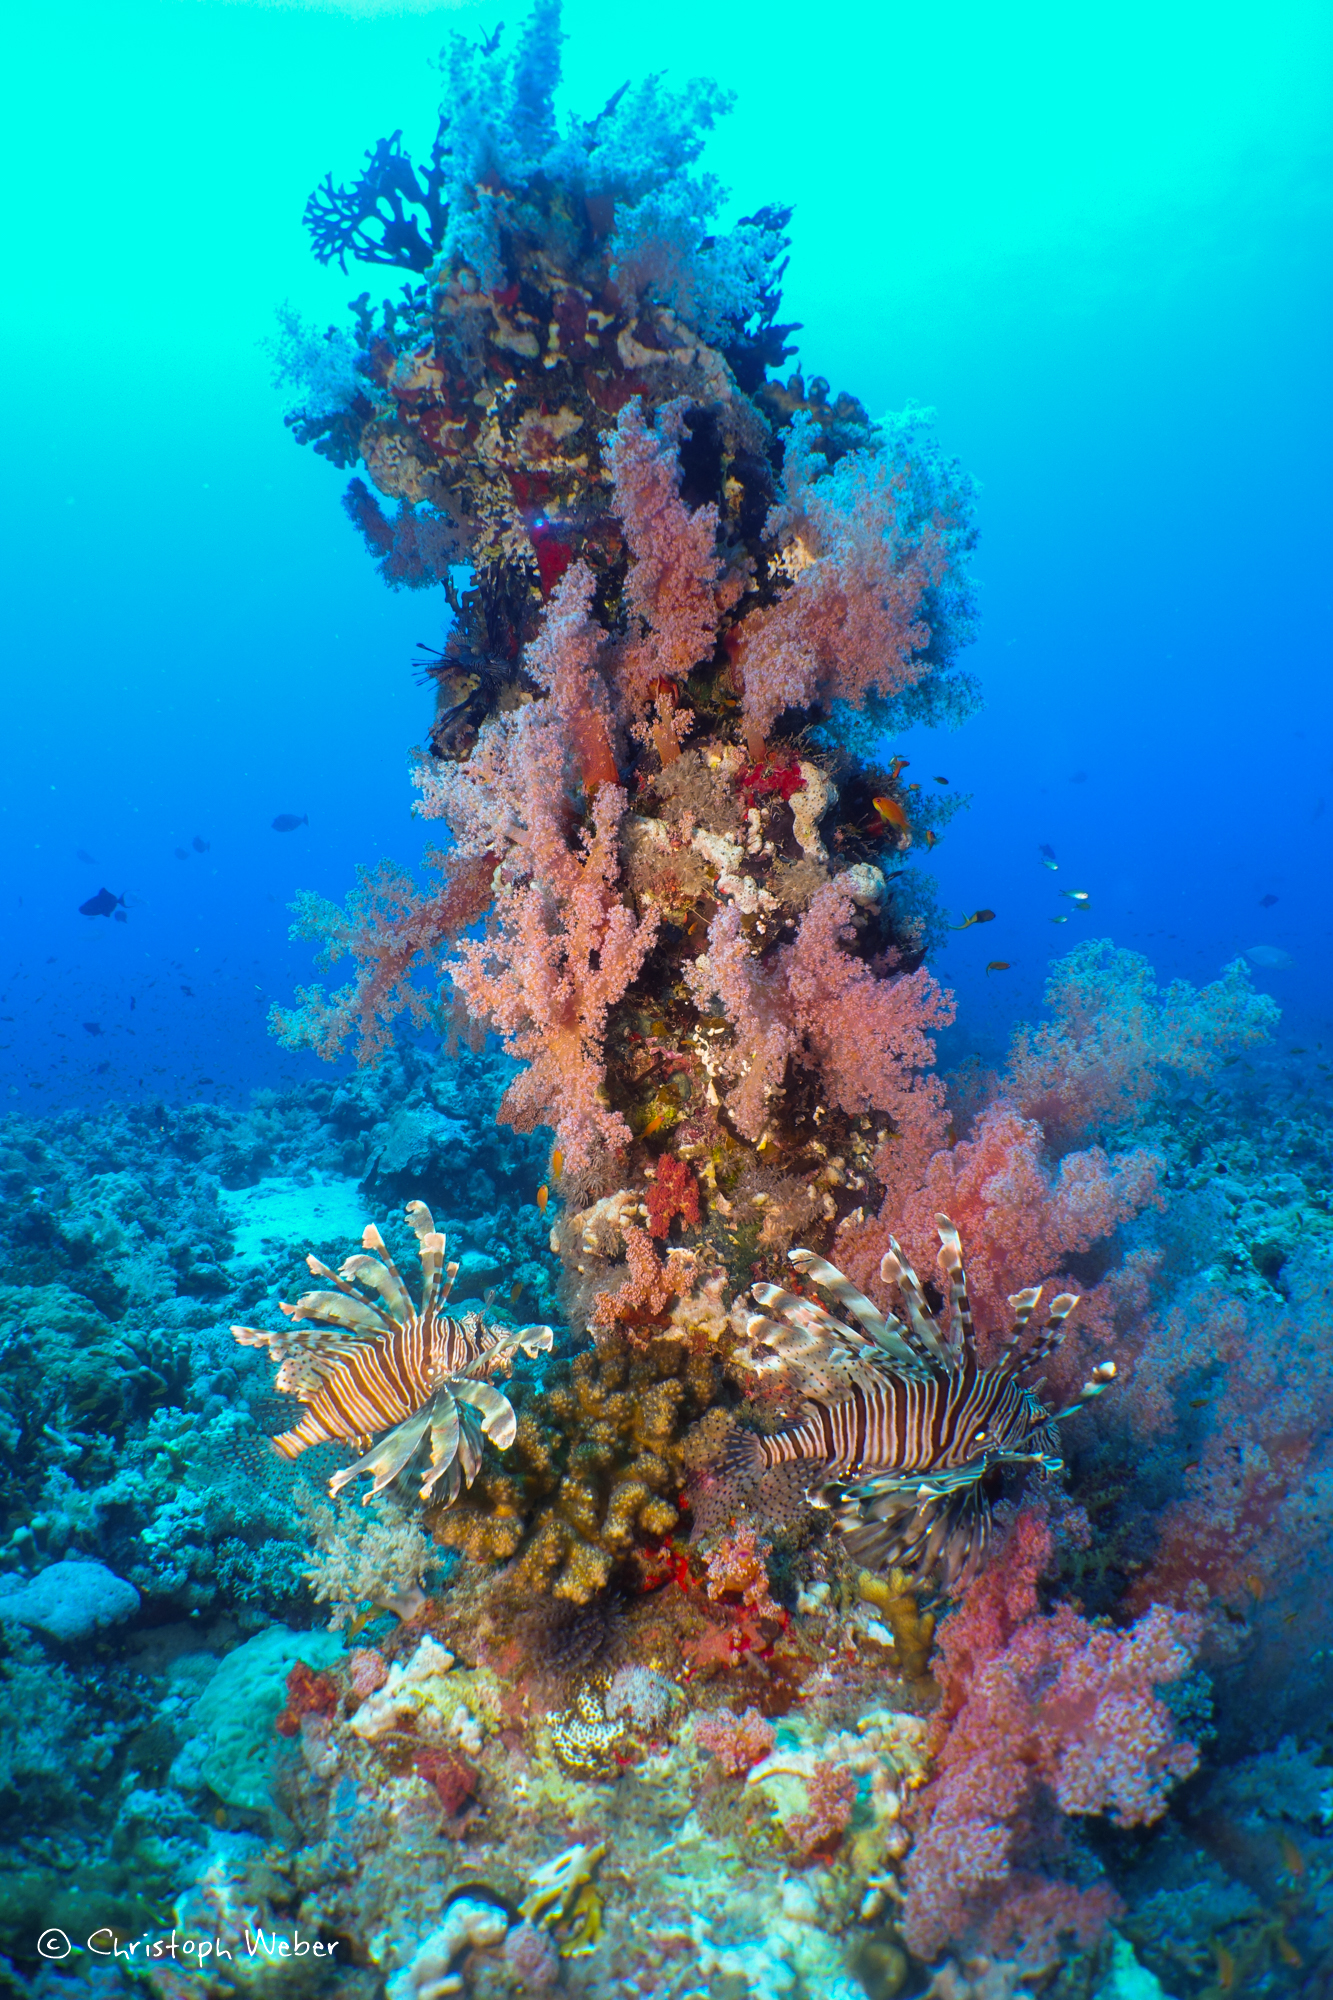 Underwater tower - Tower of coral with soft corals in Sanganeb